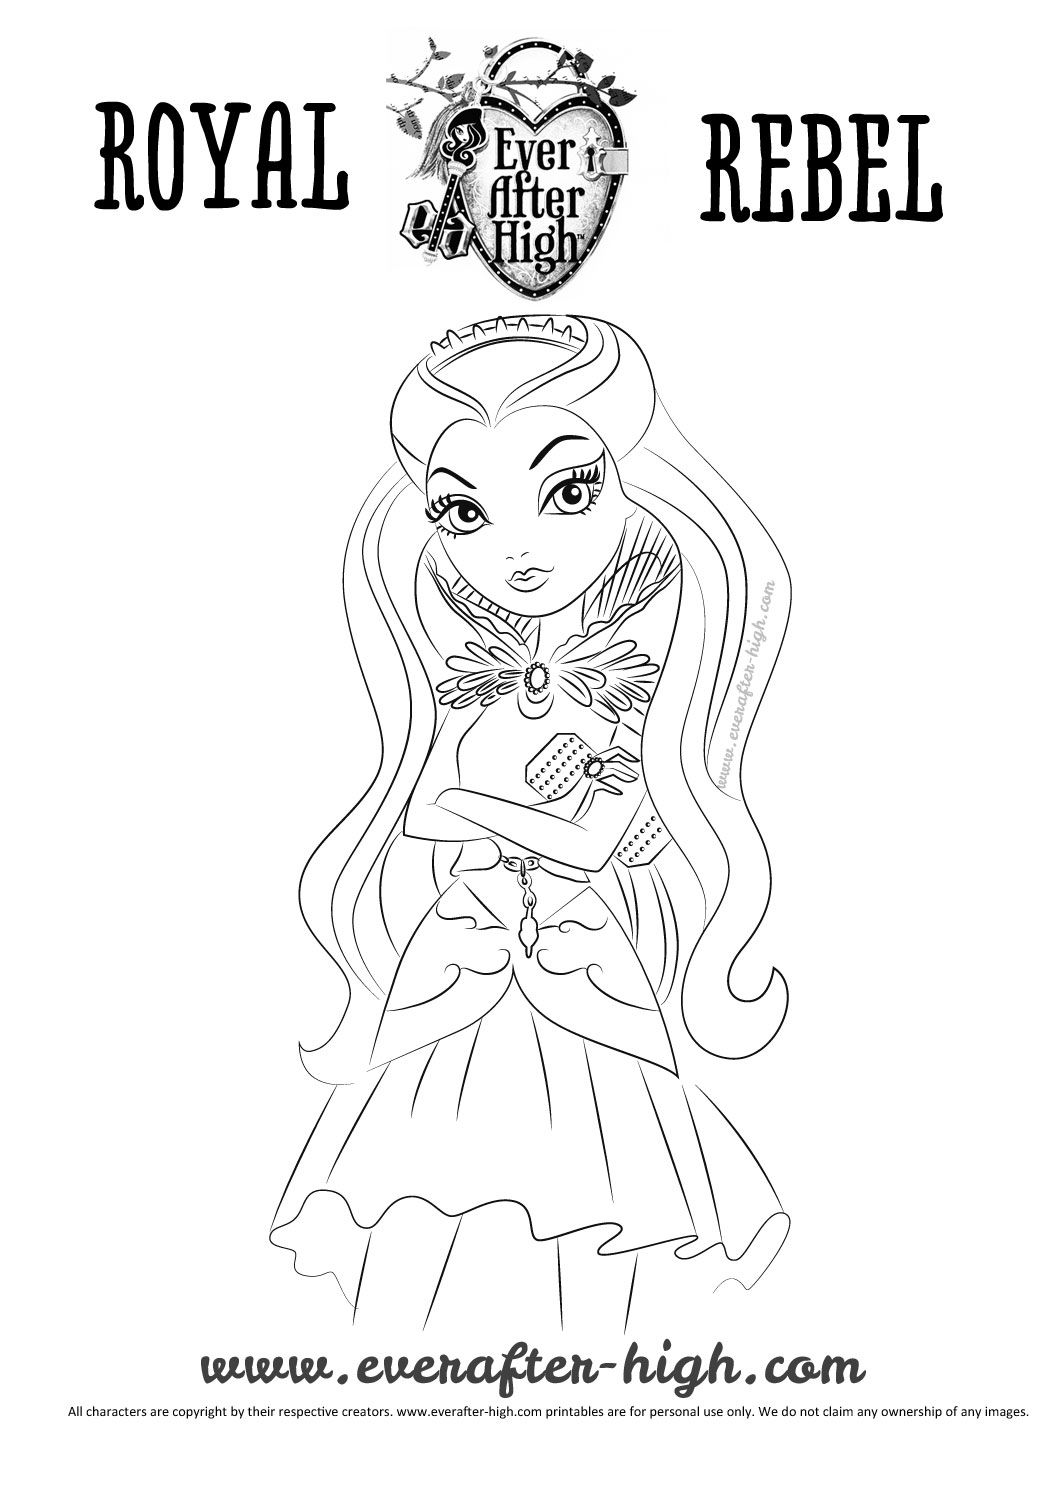 Pin By Adele Grosz On Ever After High Ever After High Coloring Pages Raven Queen